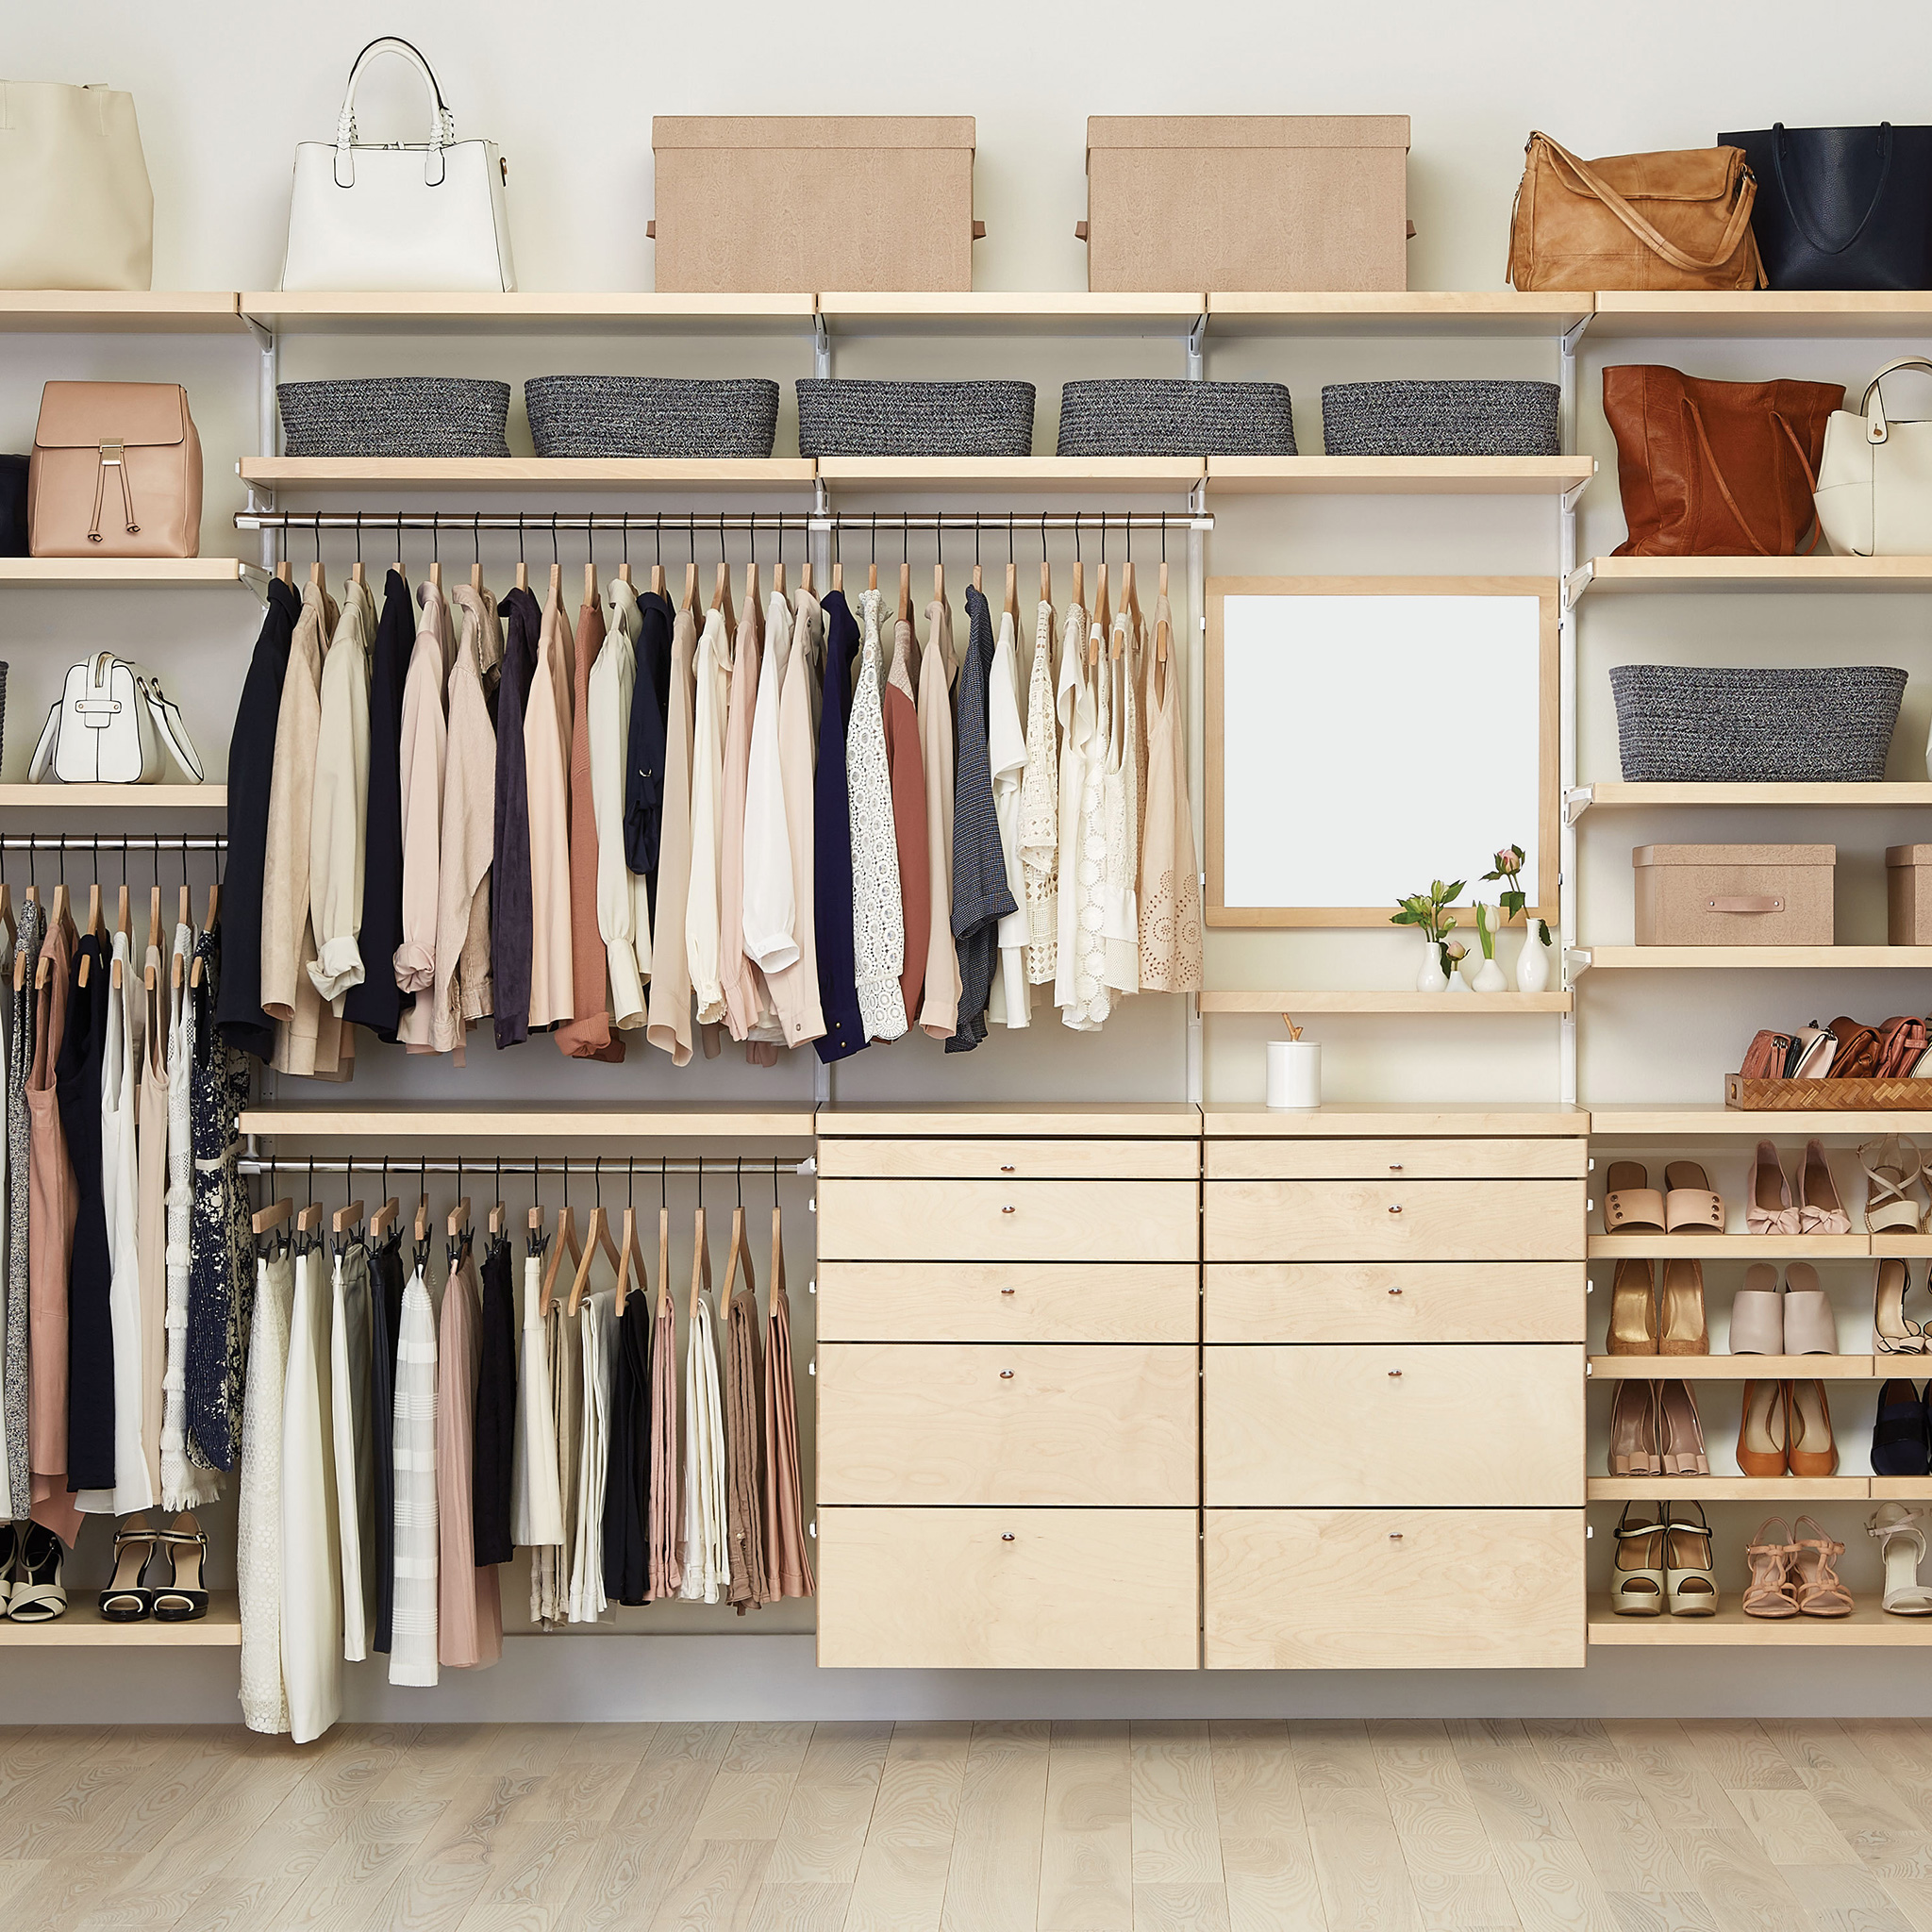 A Contained Home Organizer comes to you to help organize & plan your space.